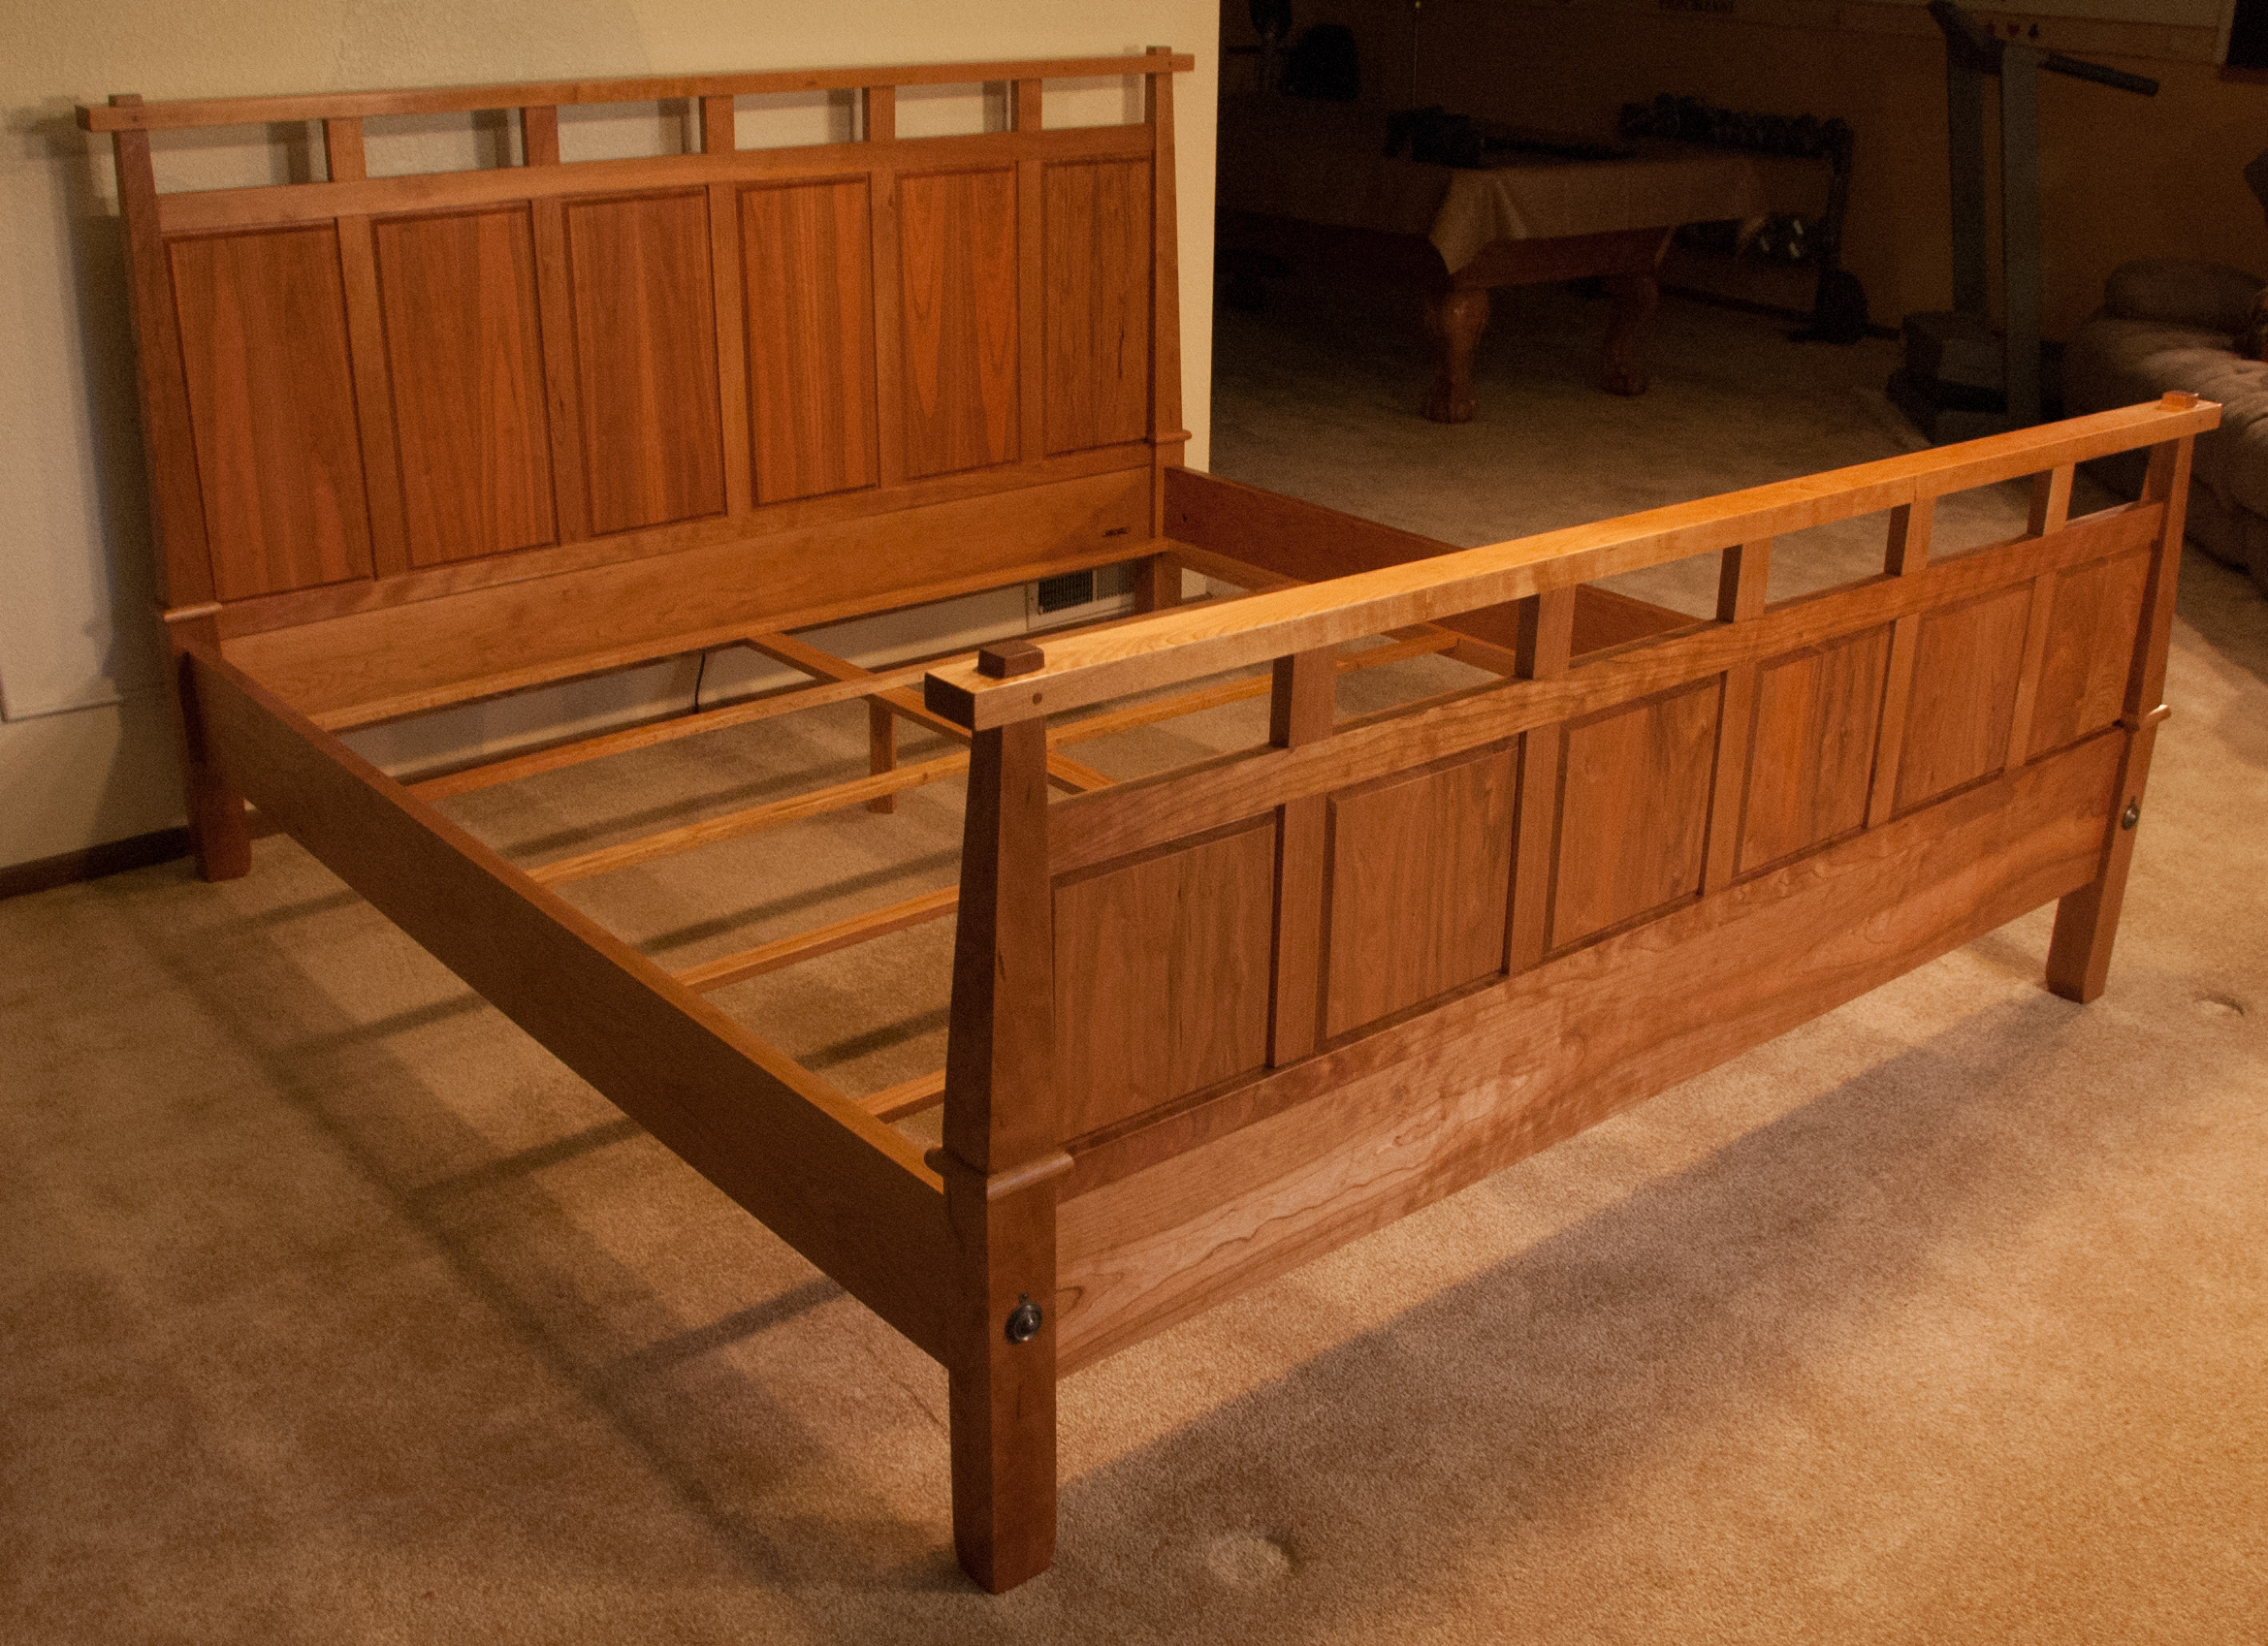 A Frame And Panel King Bed For 2013 Patrick A Mckinley